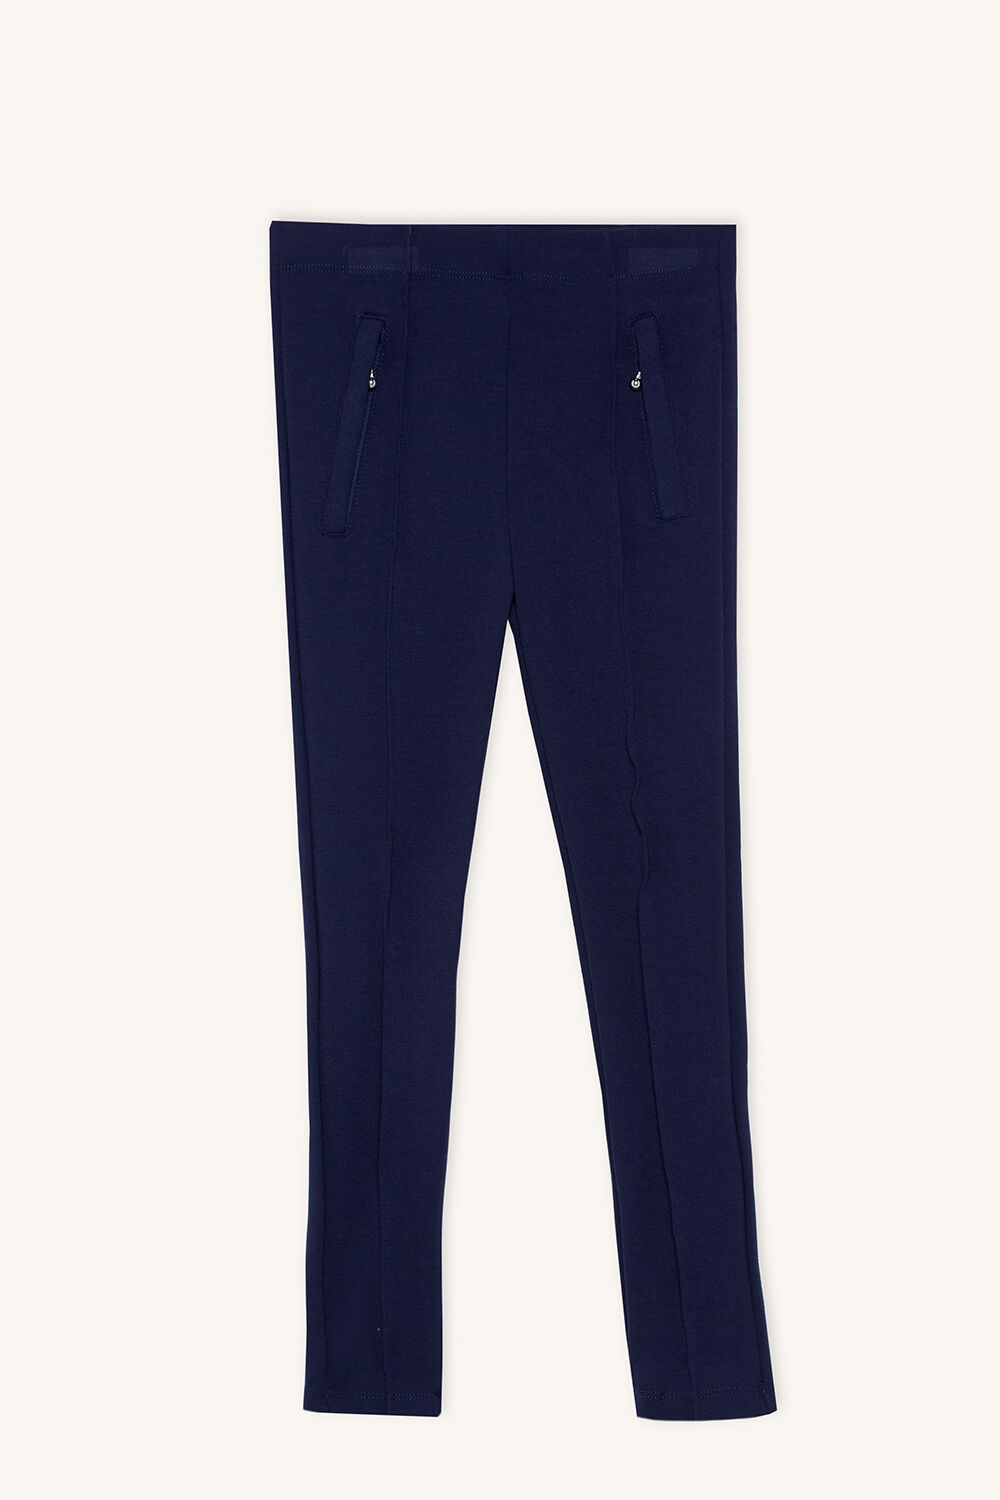 MELINA PULL ON PANT in colour MARITIME BLUE